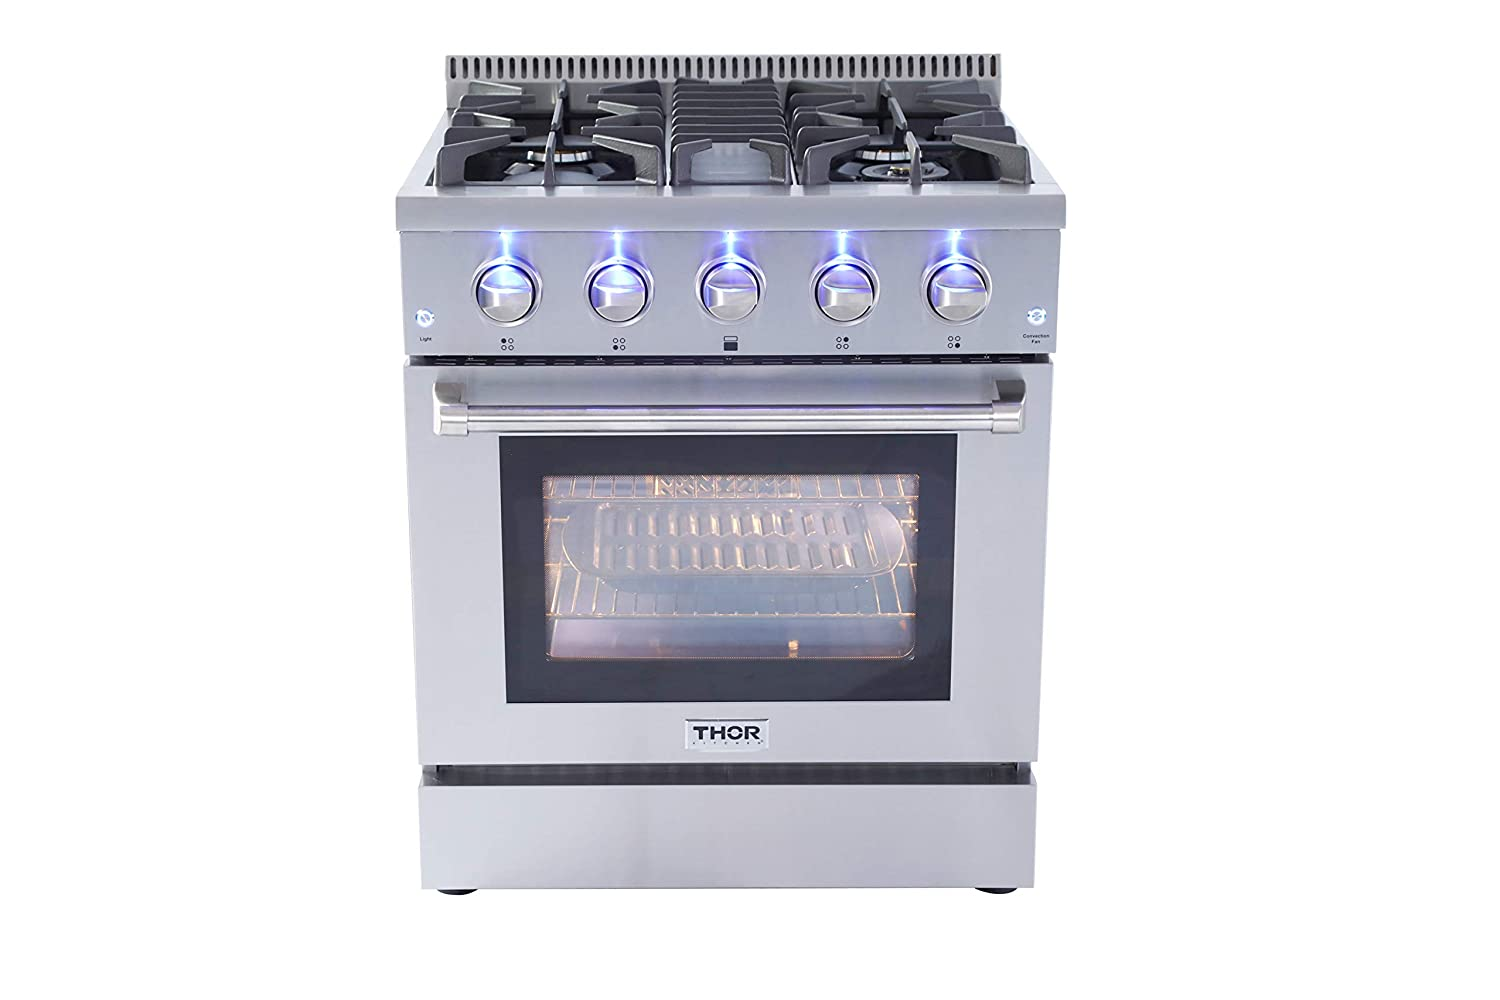 Thor Kitchen Silver 30'' Gas Range with 4.2 cu.ft Electric Convection Oven in Stainless Steel - with 4 Burners - 2-Years-Warranty